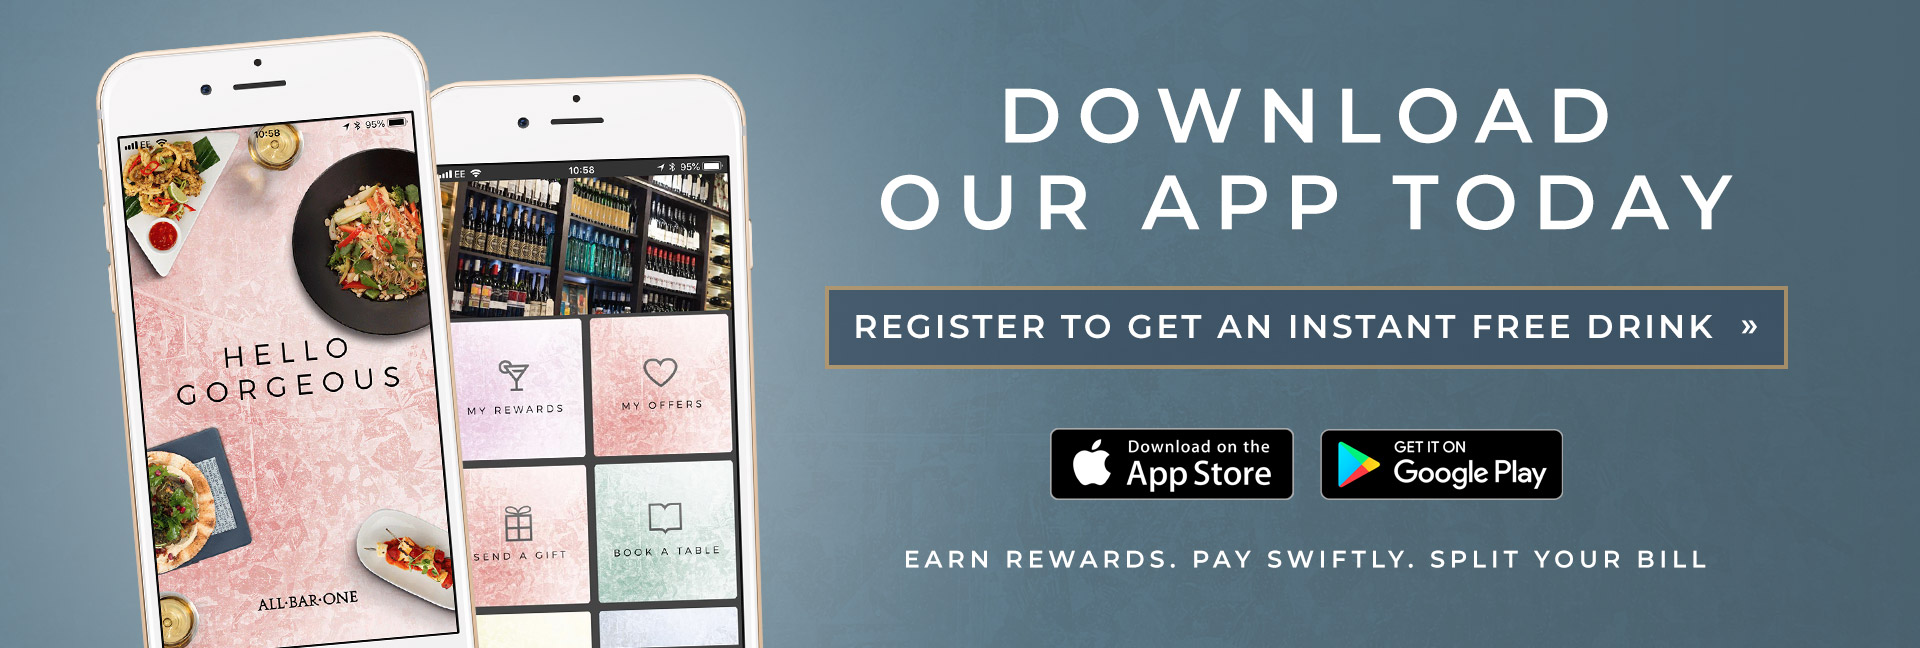 Download the All Bar One app